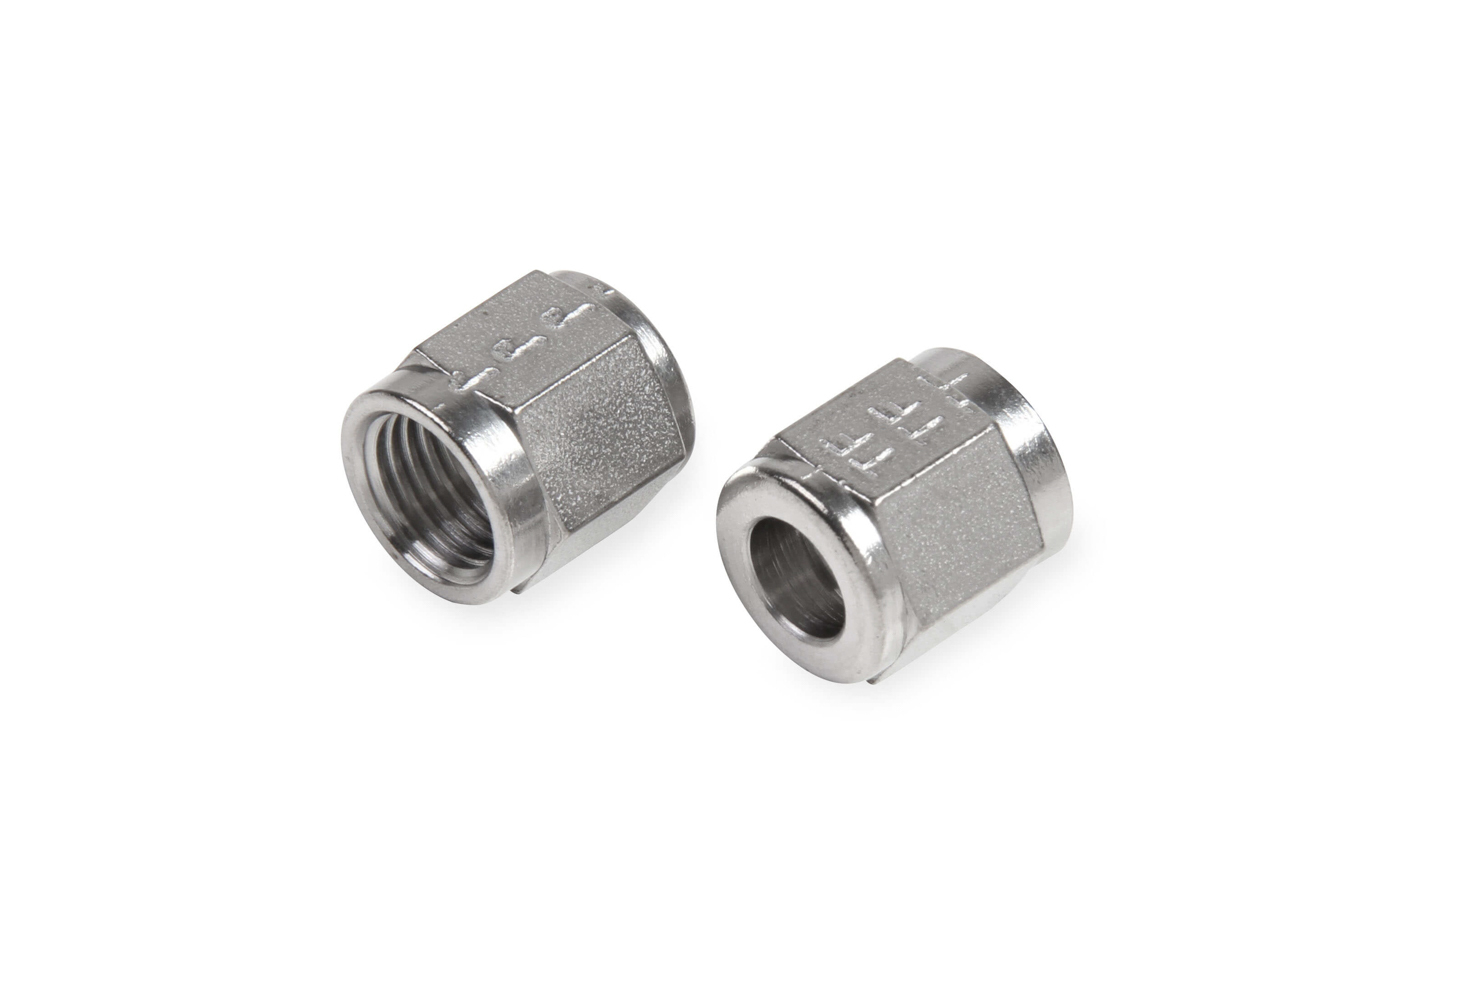 Earls SS581806ERL Fitting, Tube Nut, 6 AN, 5/16 in Tube, Stainless Steel, Natural, Pair